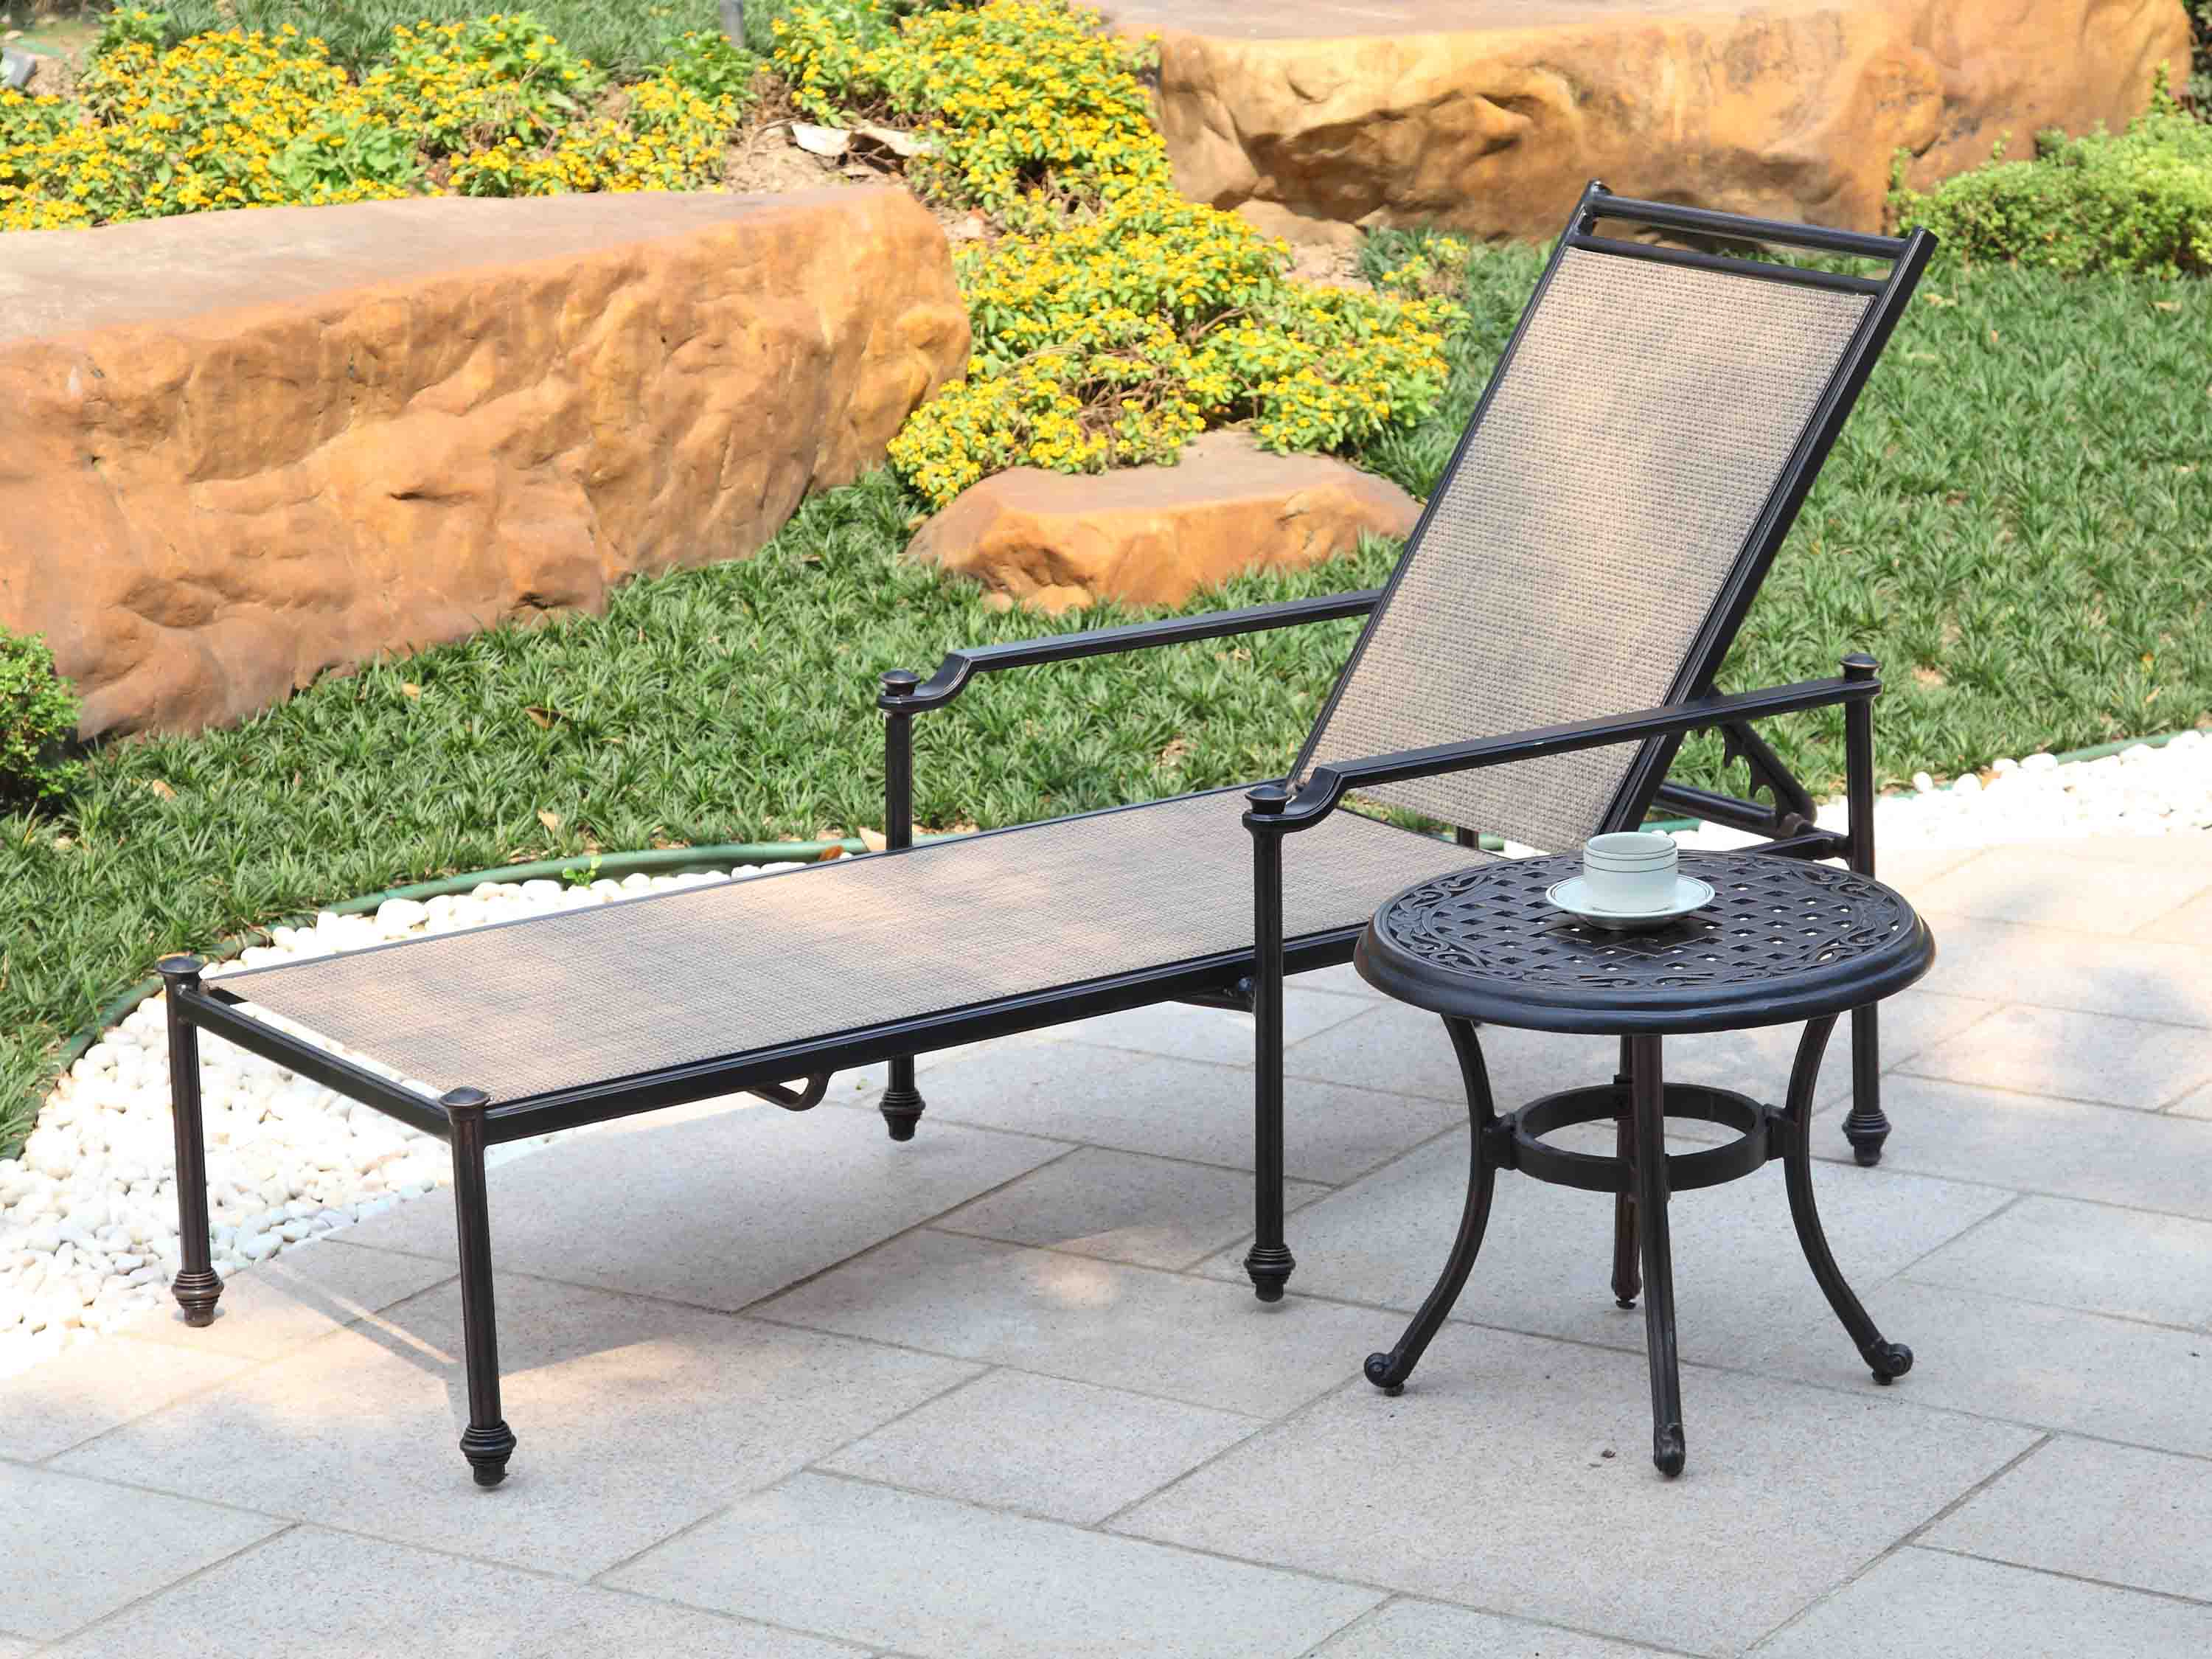 L676 Outdoor lounge chair cast aluminum